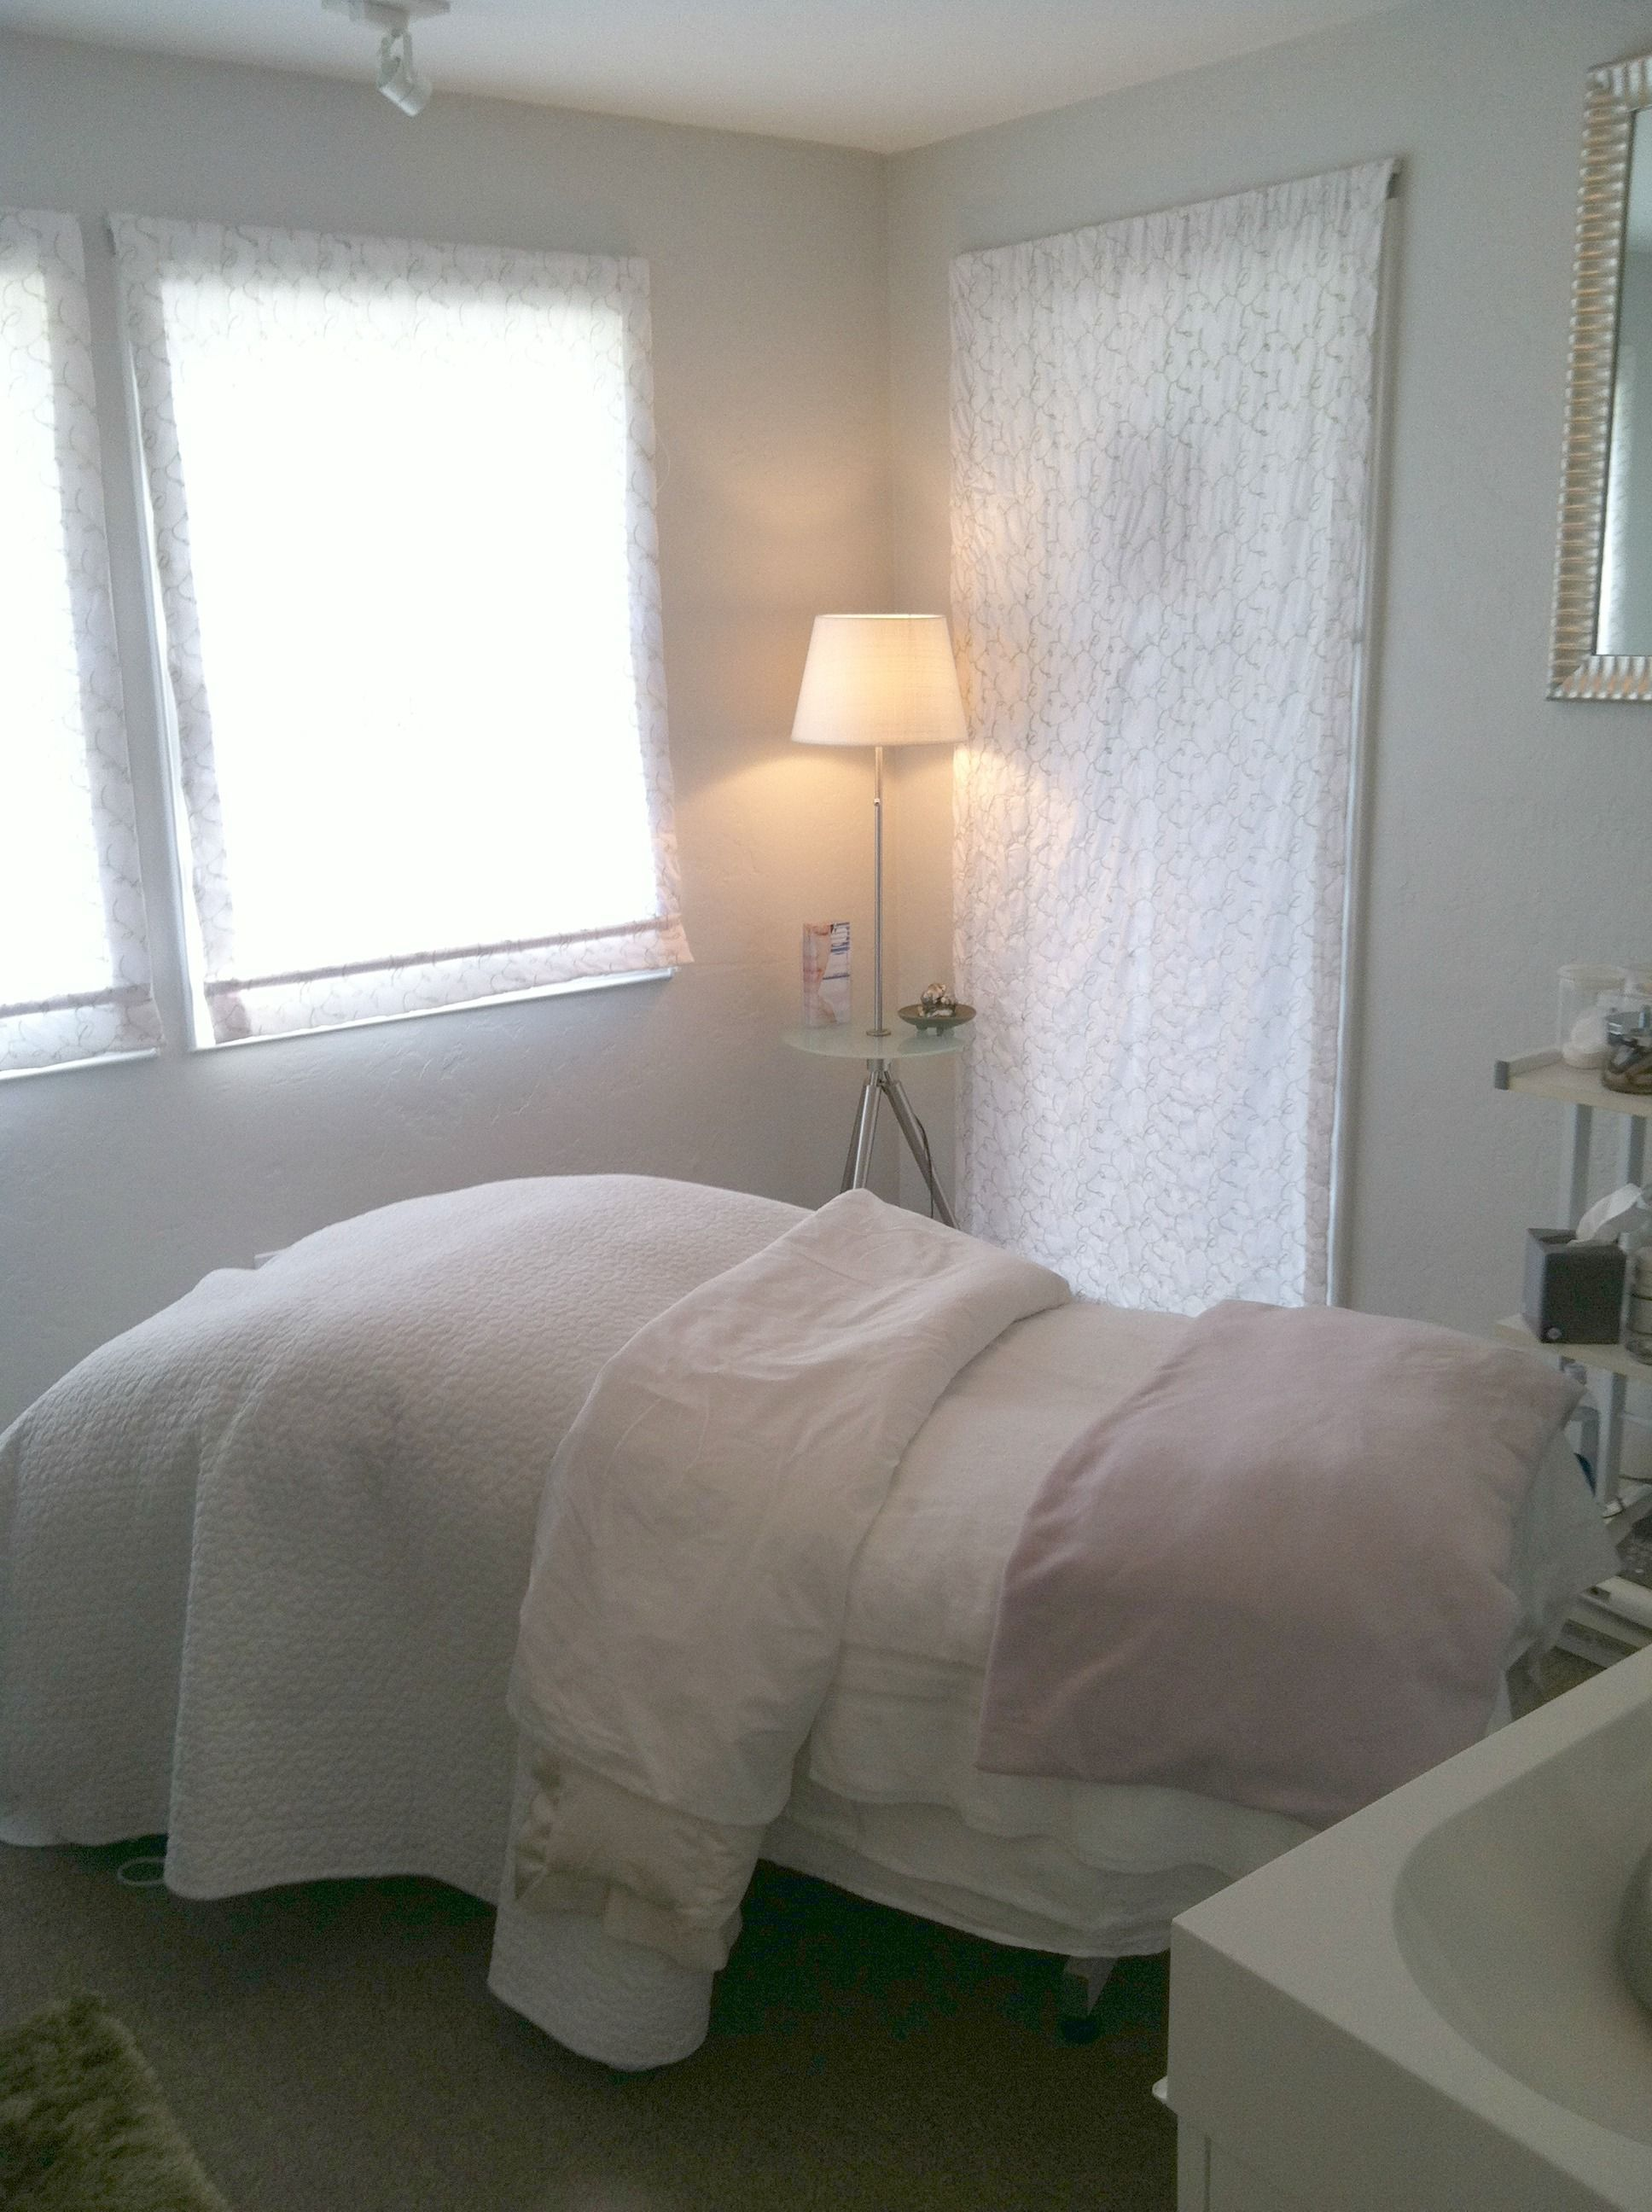 Day Spa  Massage Therapy Room  Esthetician Room  Aesthetician Room  Esthetics -5919